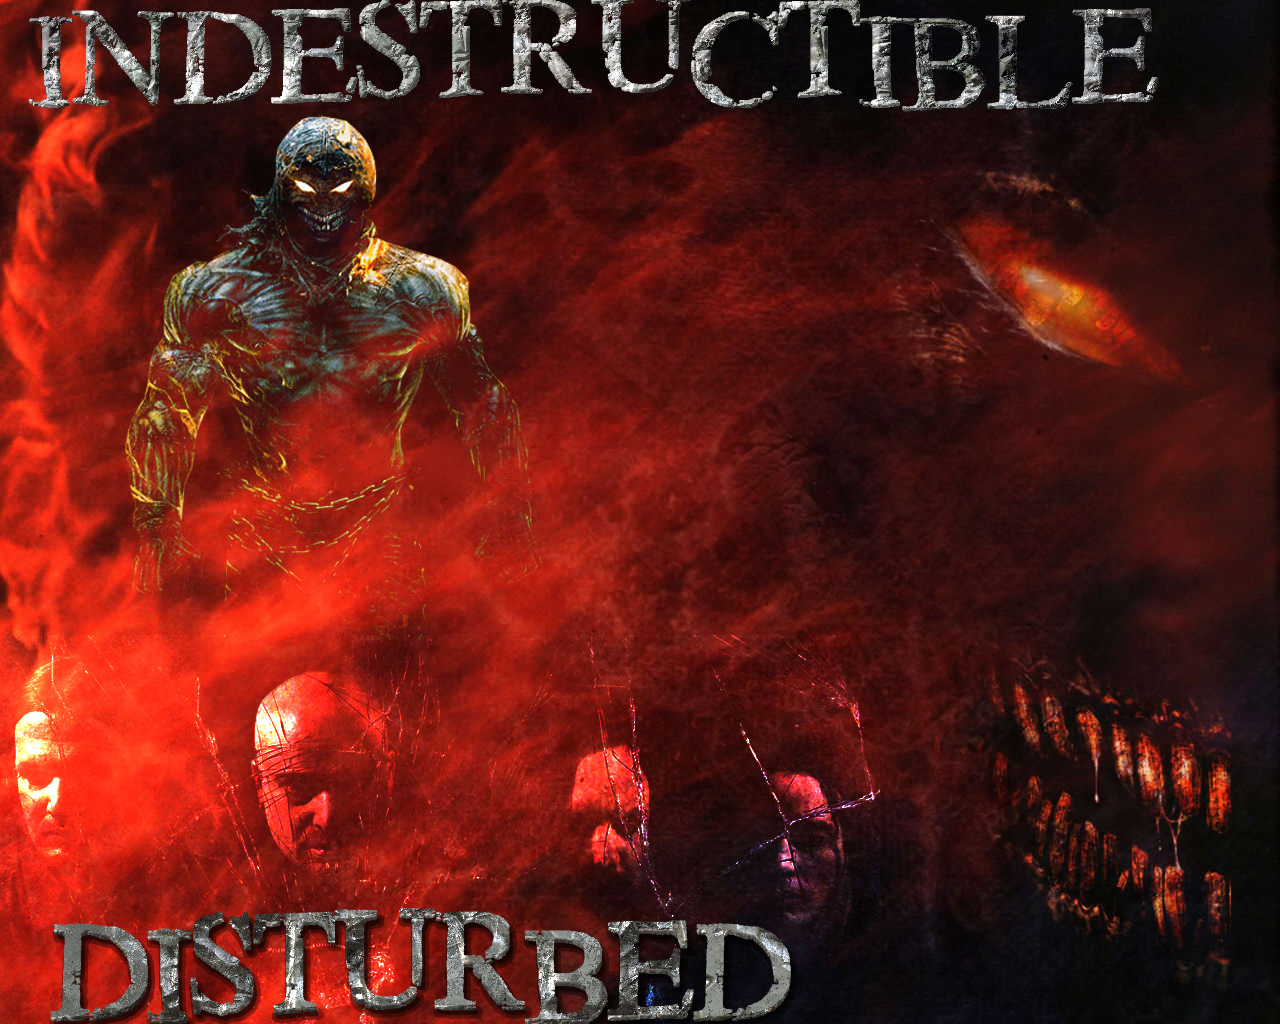 Nothing Disturbing About Disturbed 1280x1024